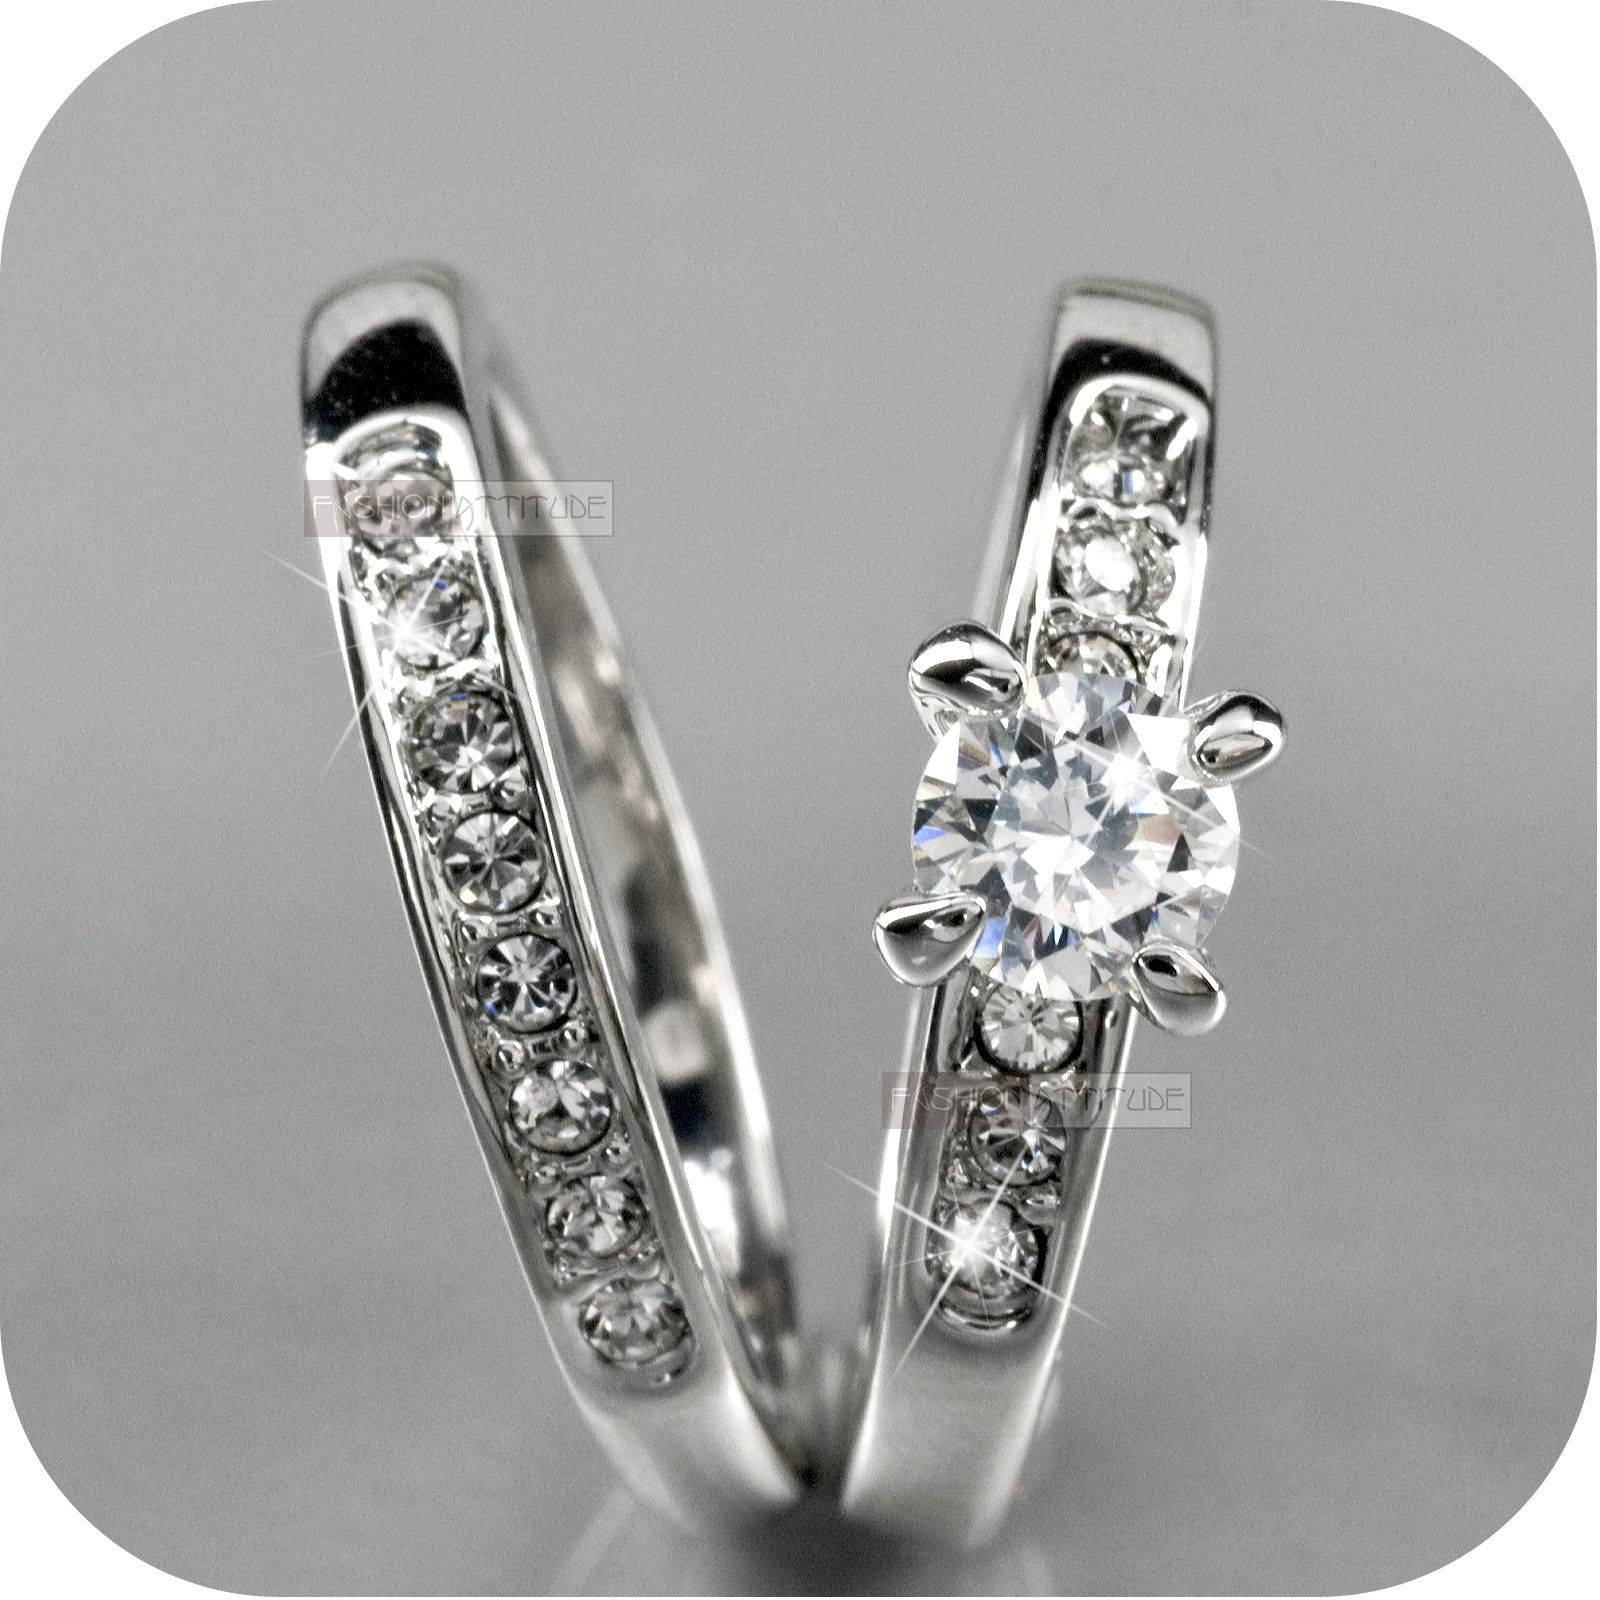 18K White Gold Gp Made With Swarovski Crystal Wedding Ring Set Us Regarding Swarovski Crystal Wedding Rings (Gallery 10 of 15)